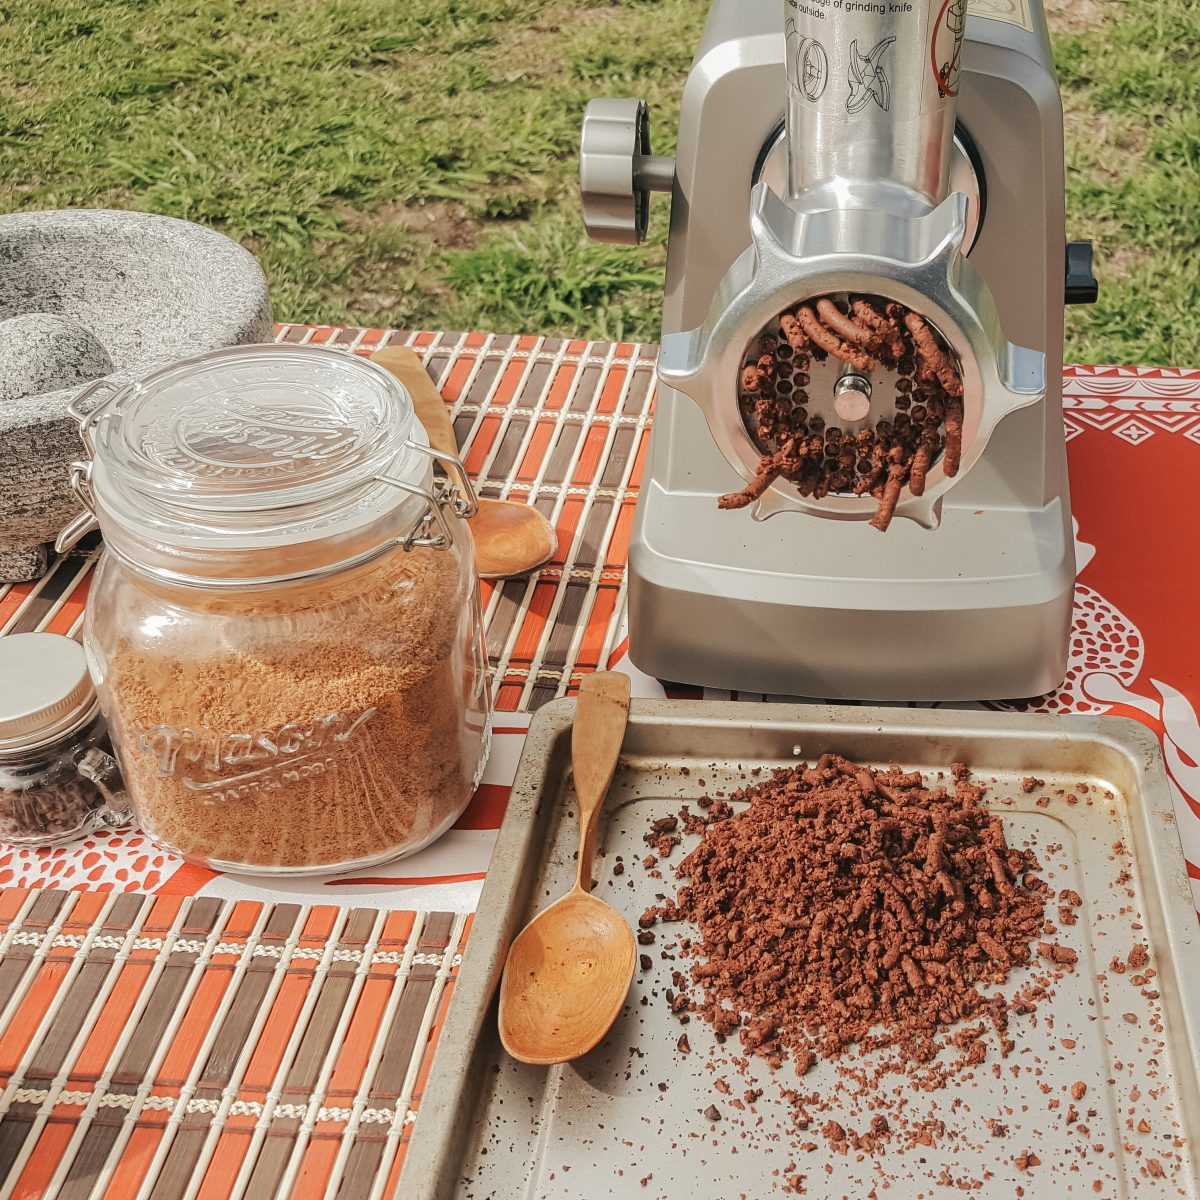 First-grind-of-cacao-beans-1200x1200.jpg